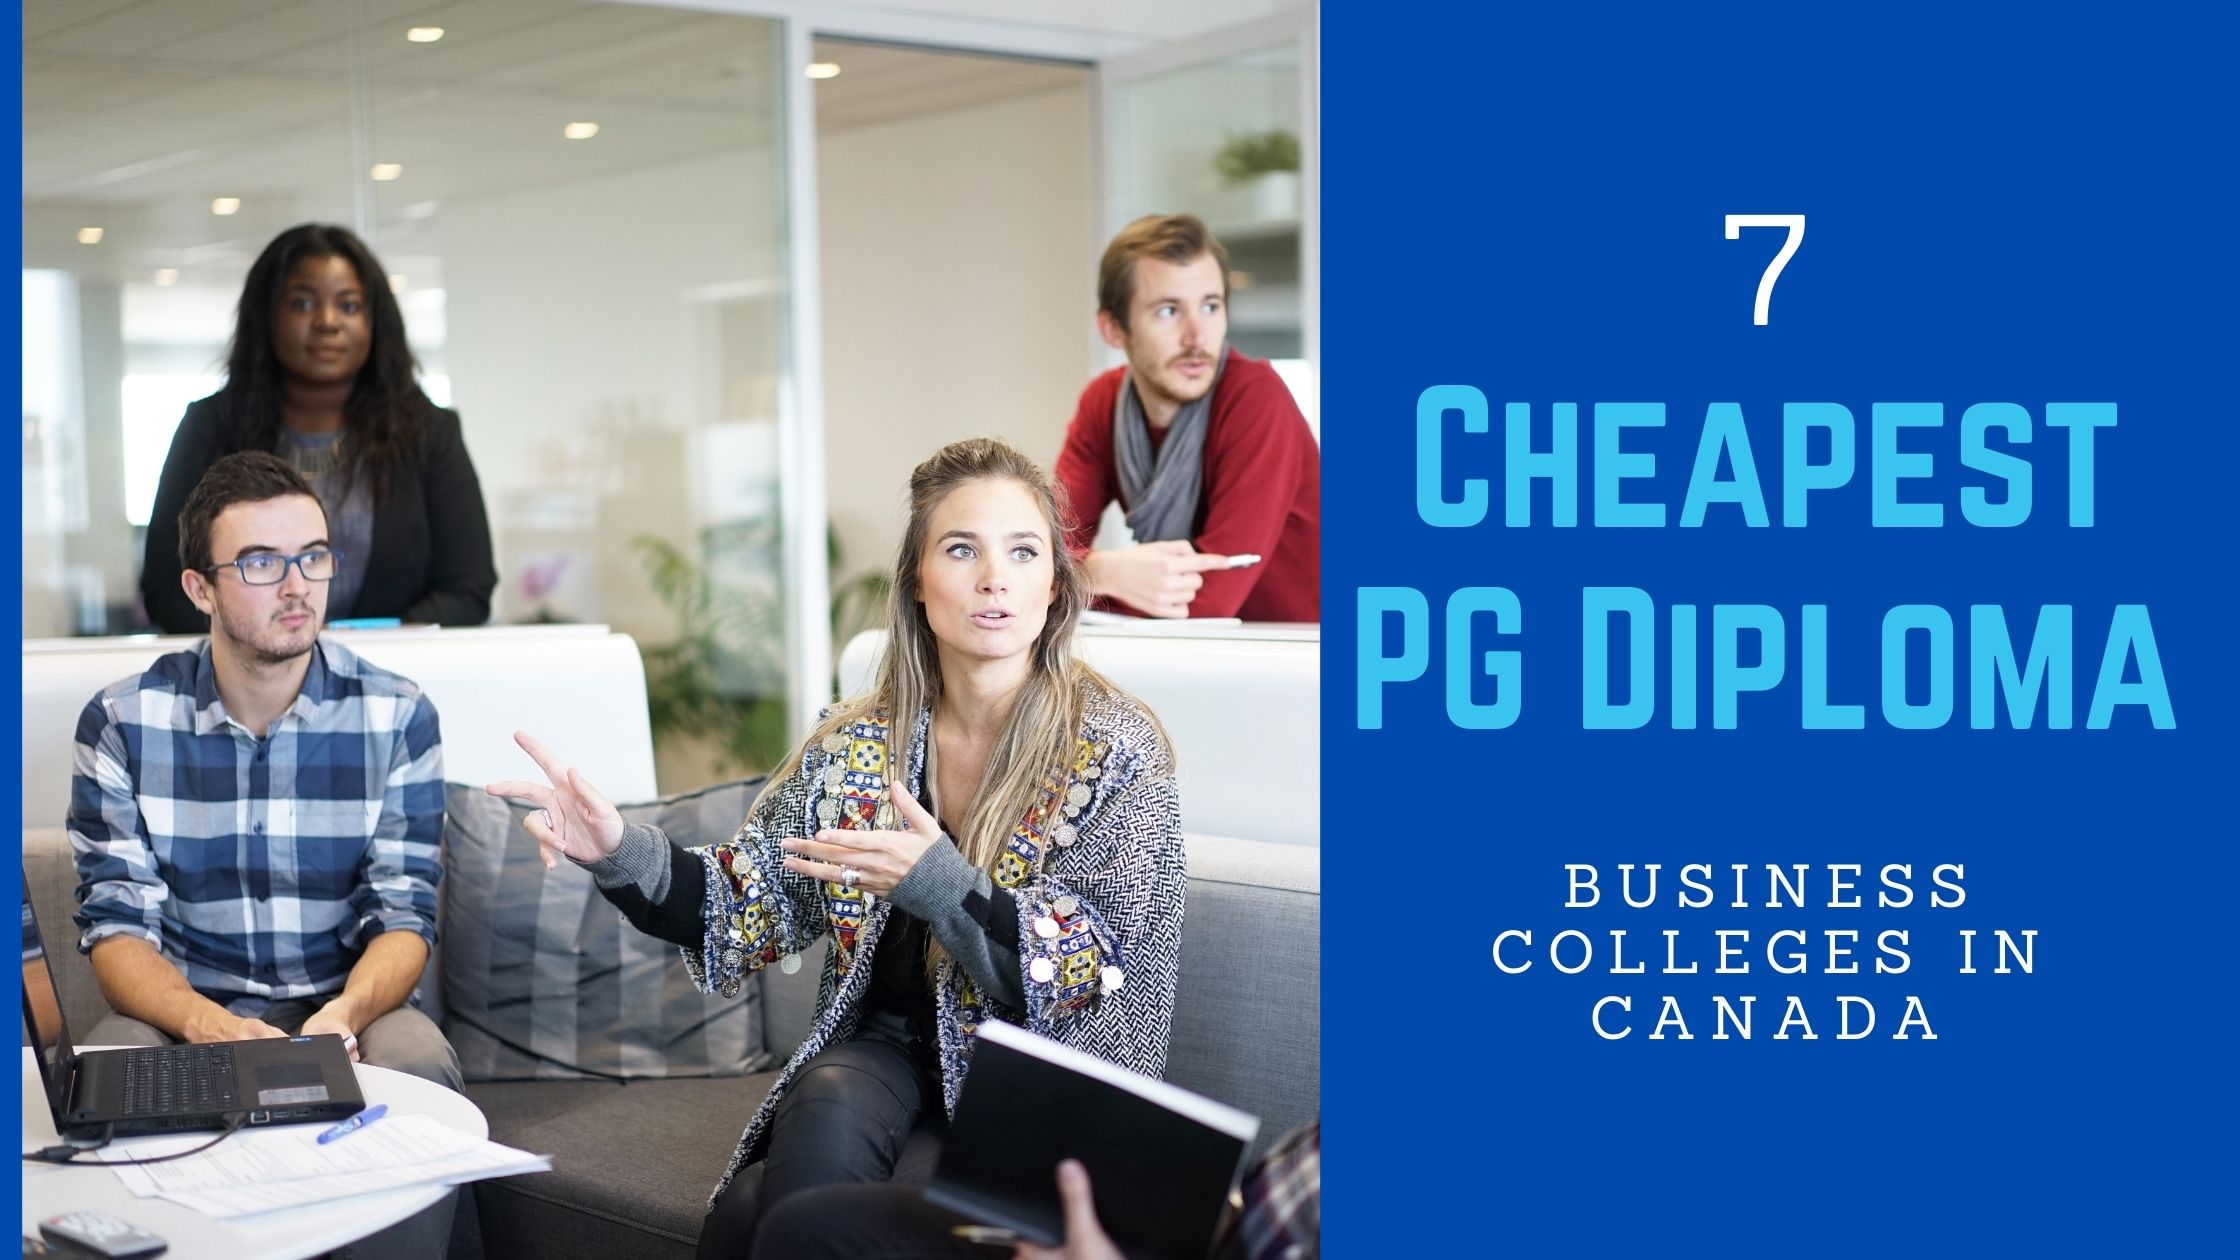 7 Cheapest PG Diploma: Business Colleges in Canada